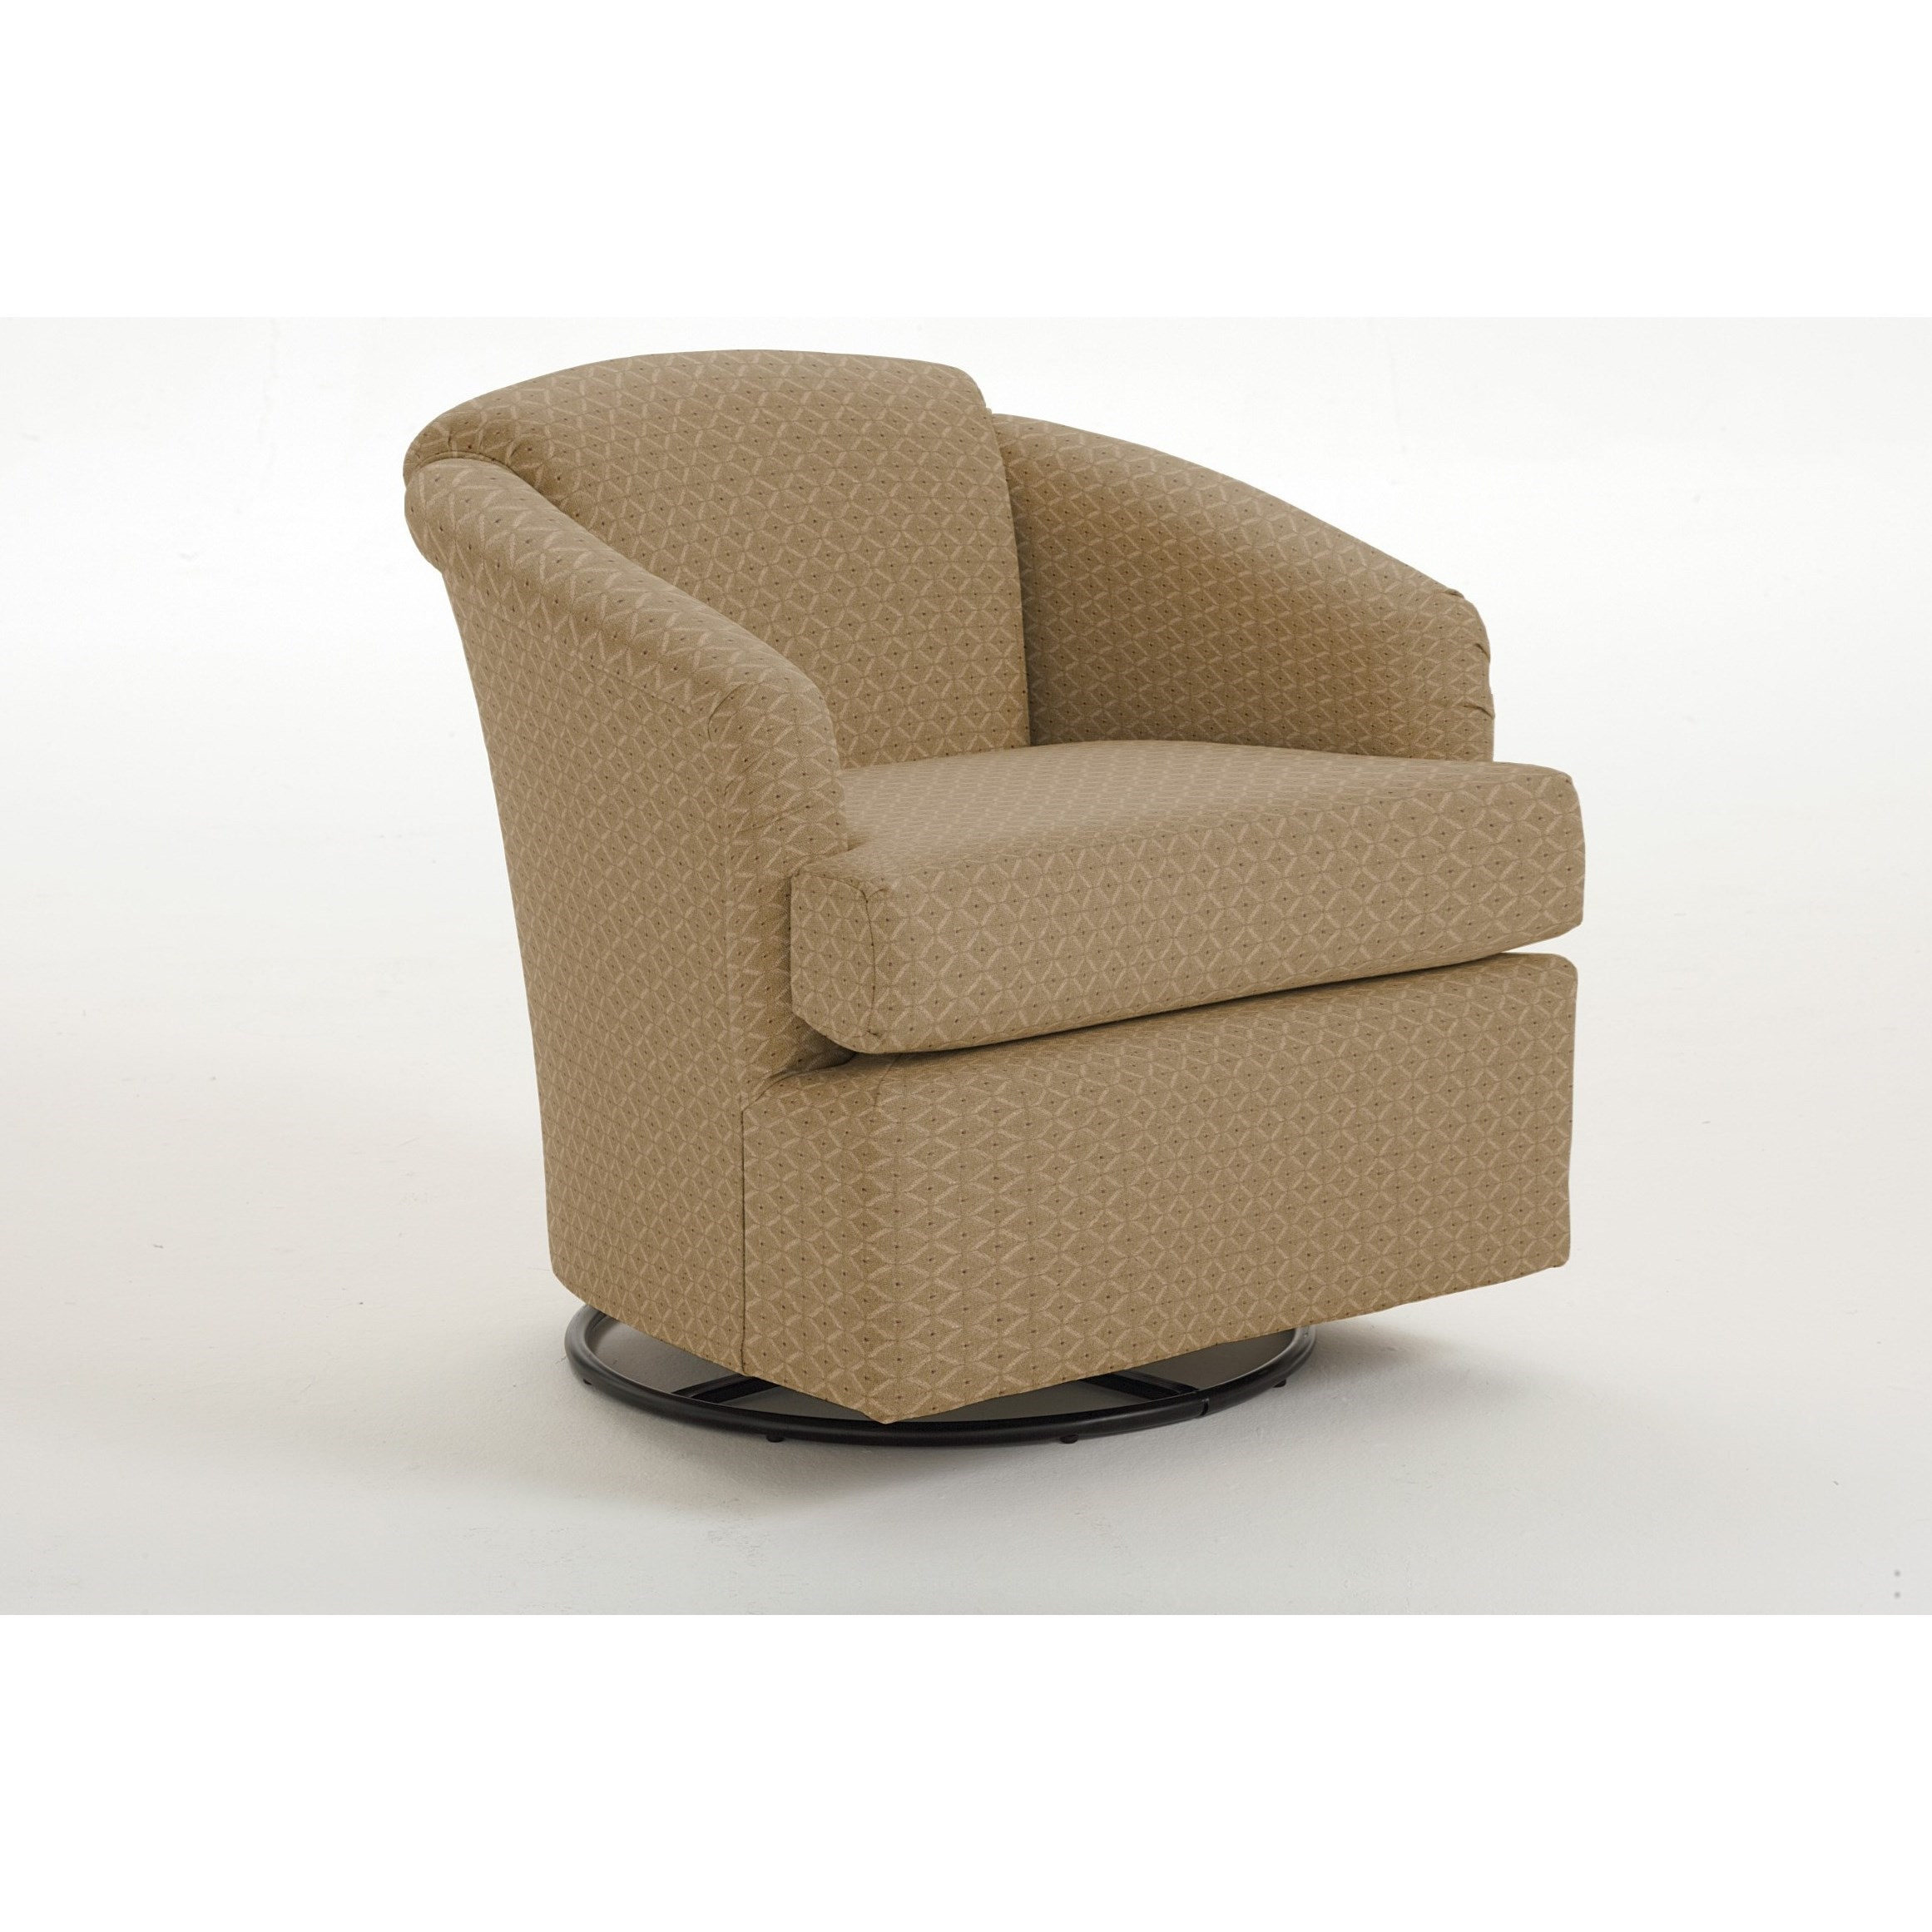 Cass Cass Swivel Chair by Best Home Furnishings at Factory Direct Furniture